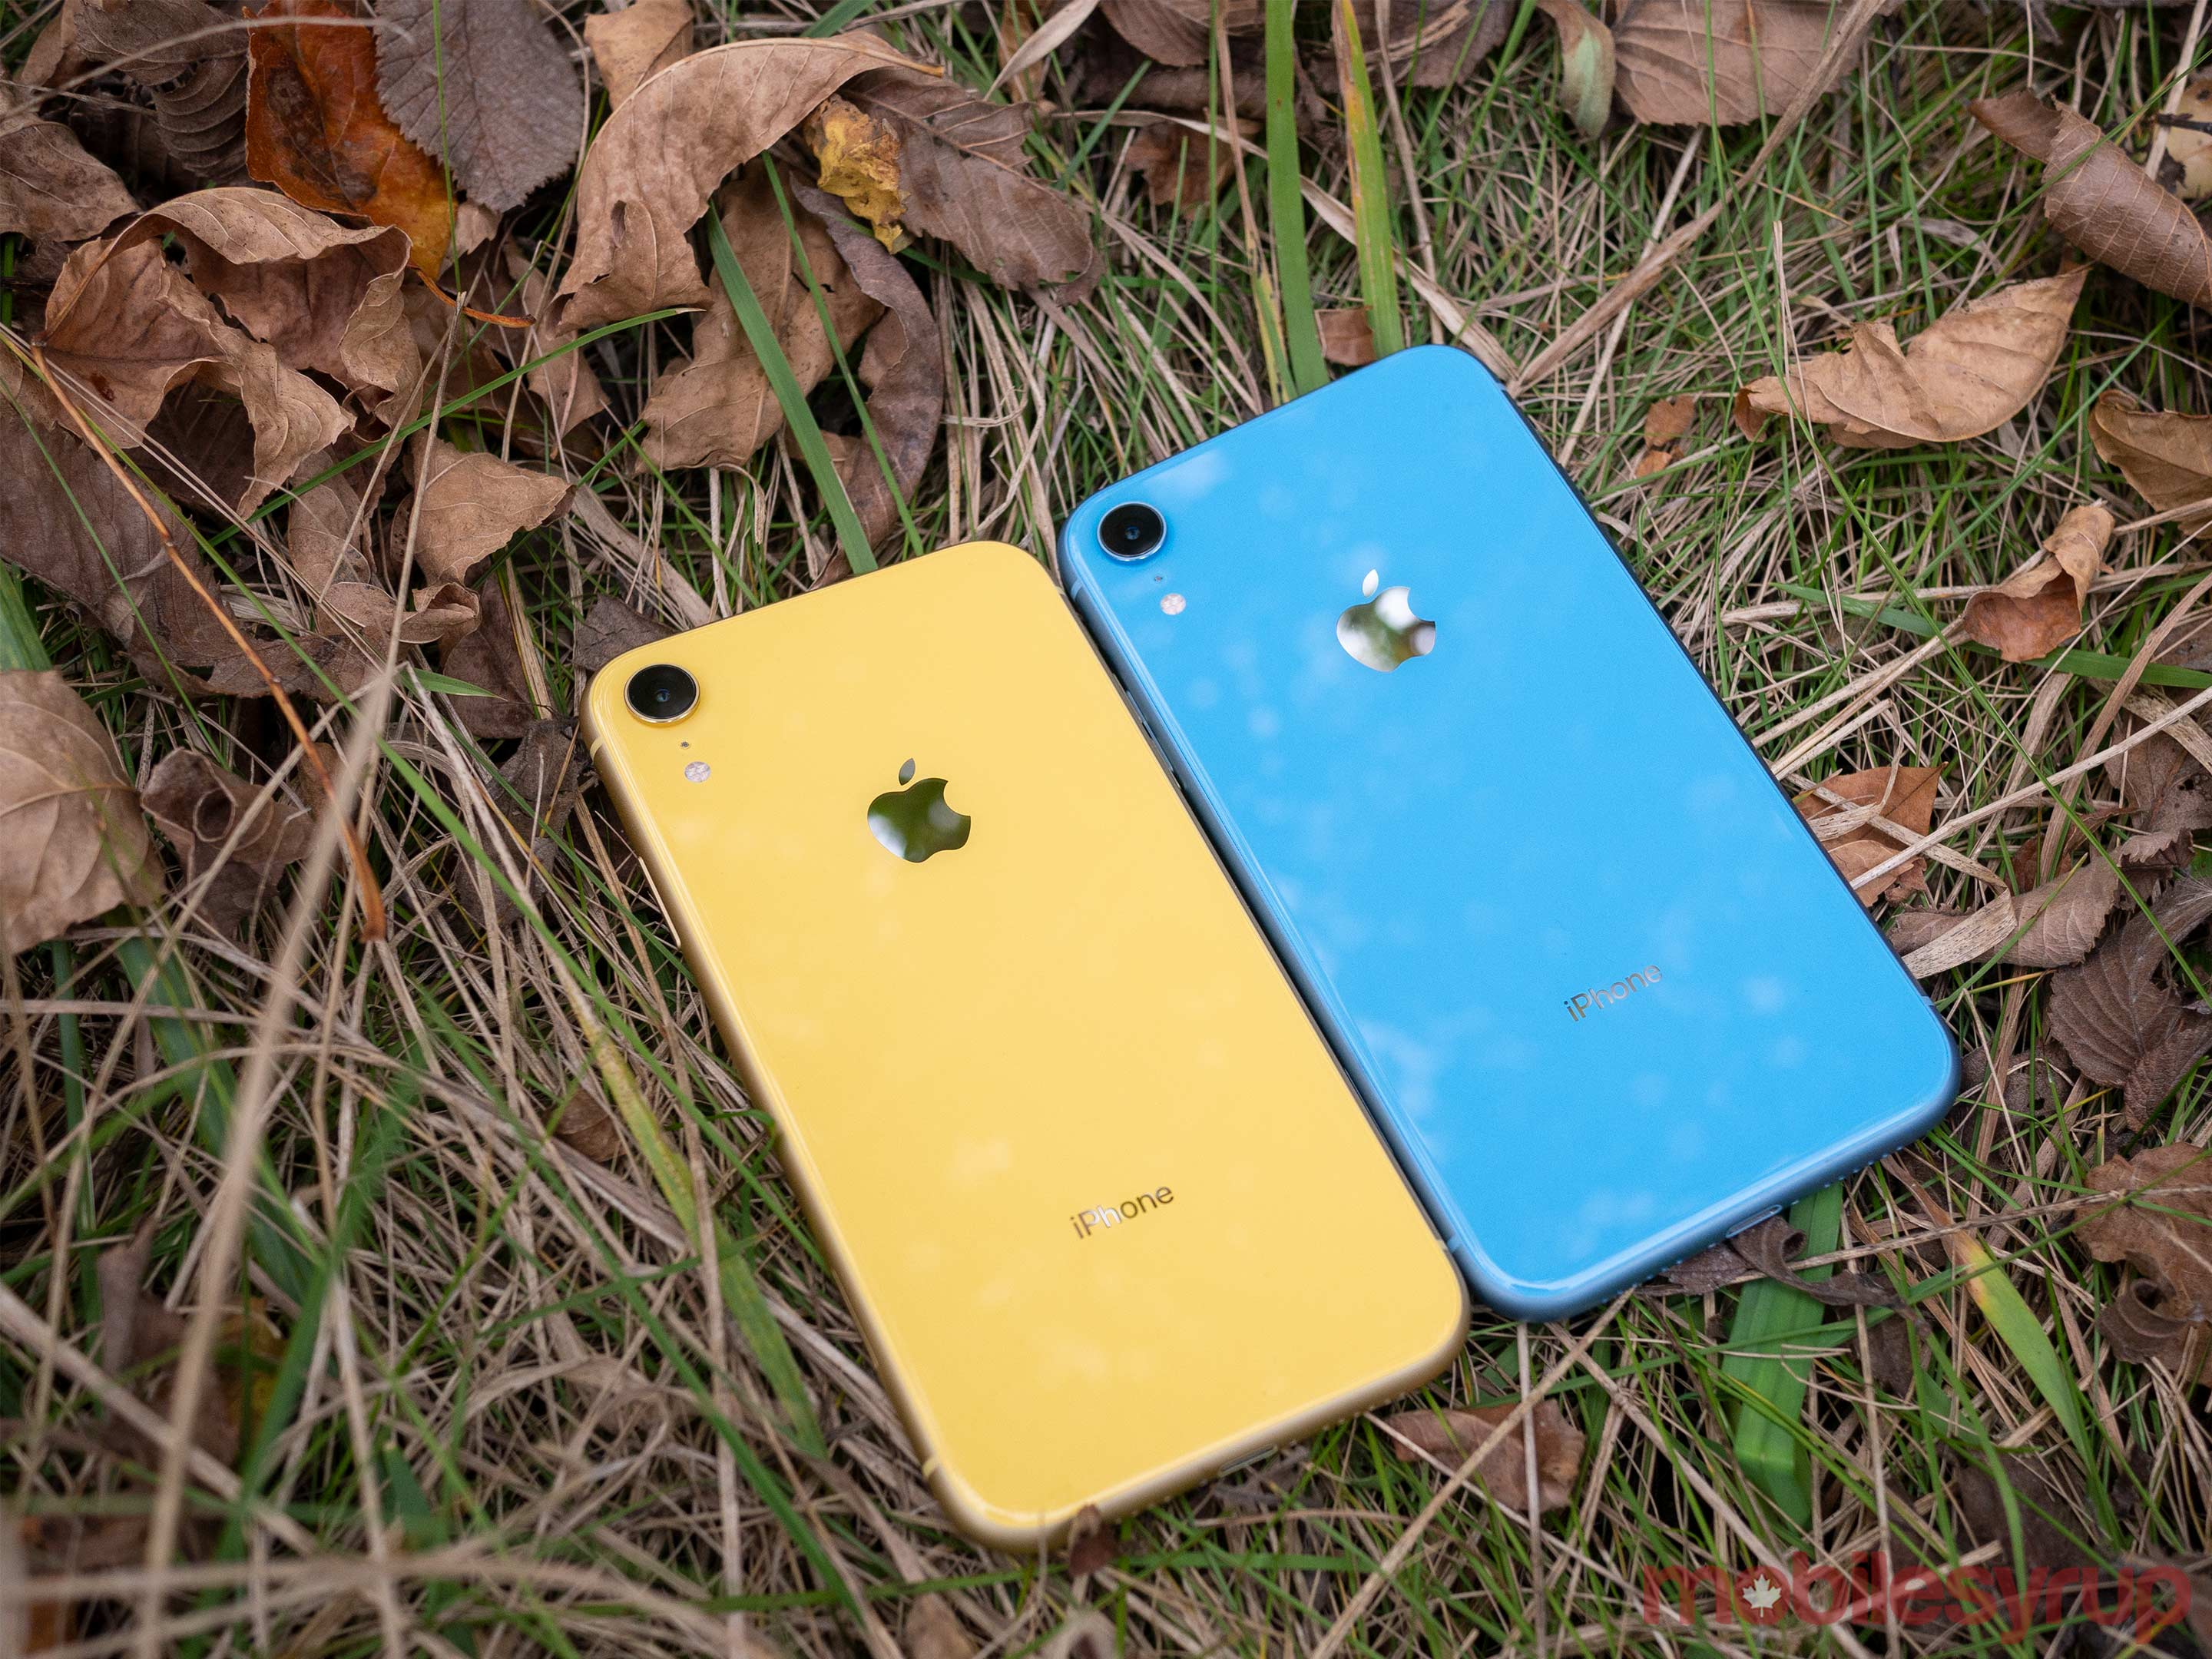 iPhone XR yellow and blue